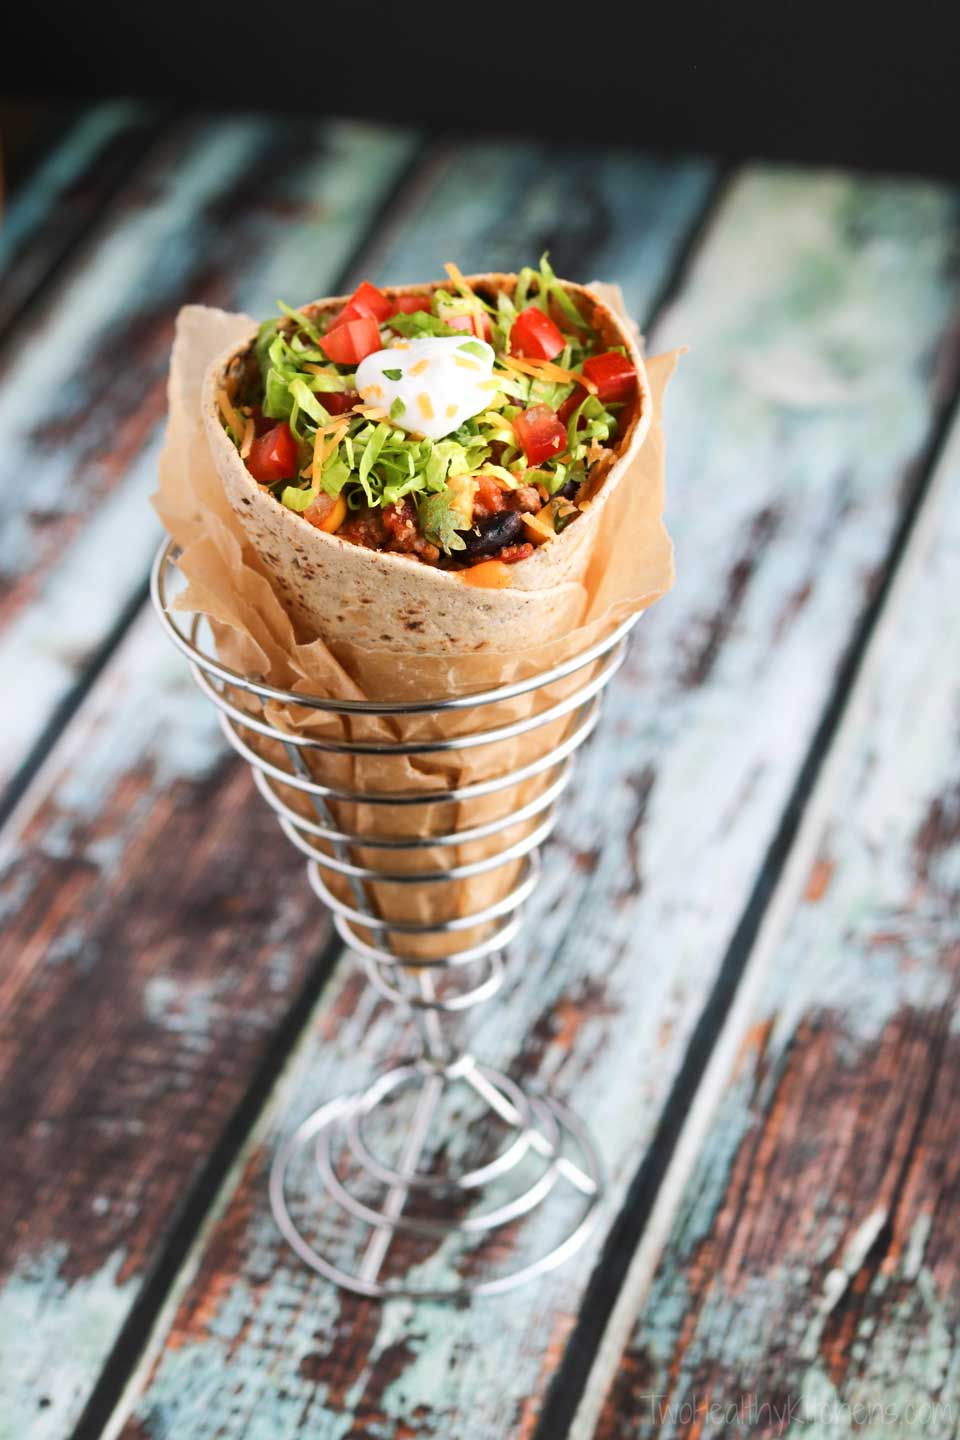 Because you can make both the healthy beef taco meat and the DIY cones ahead of time, it's easy to reheat just what you need for even just one single-serve Taco Cone at a time – ready for each member of your family whenever they're ready to eat!